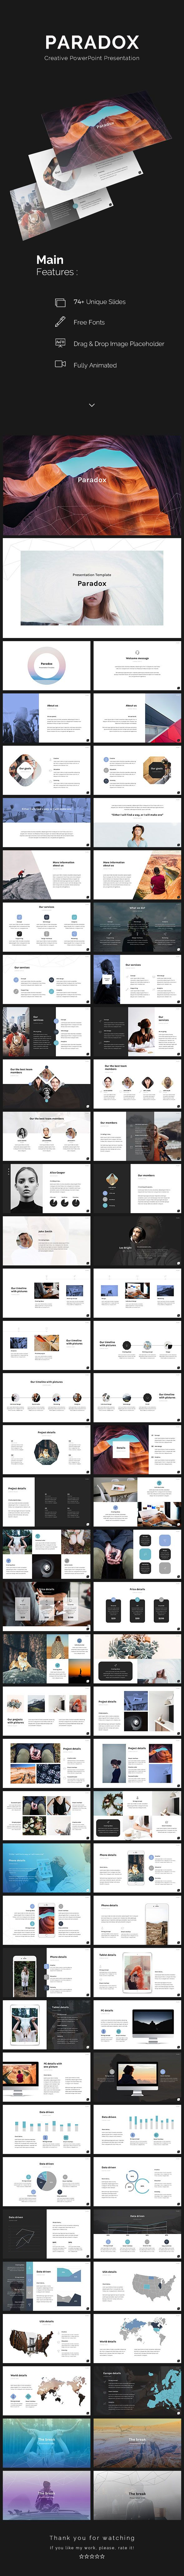 This is Creative PowerPoint Template for your multipurpose business. Paradox comes with infographic elements, charts graphs, maps and icons.